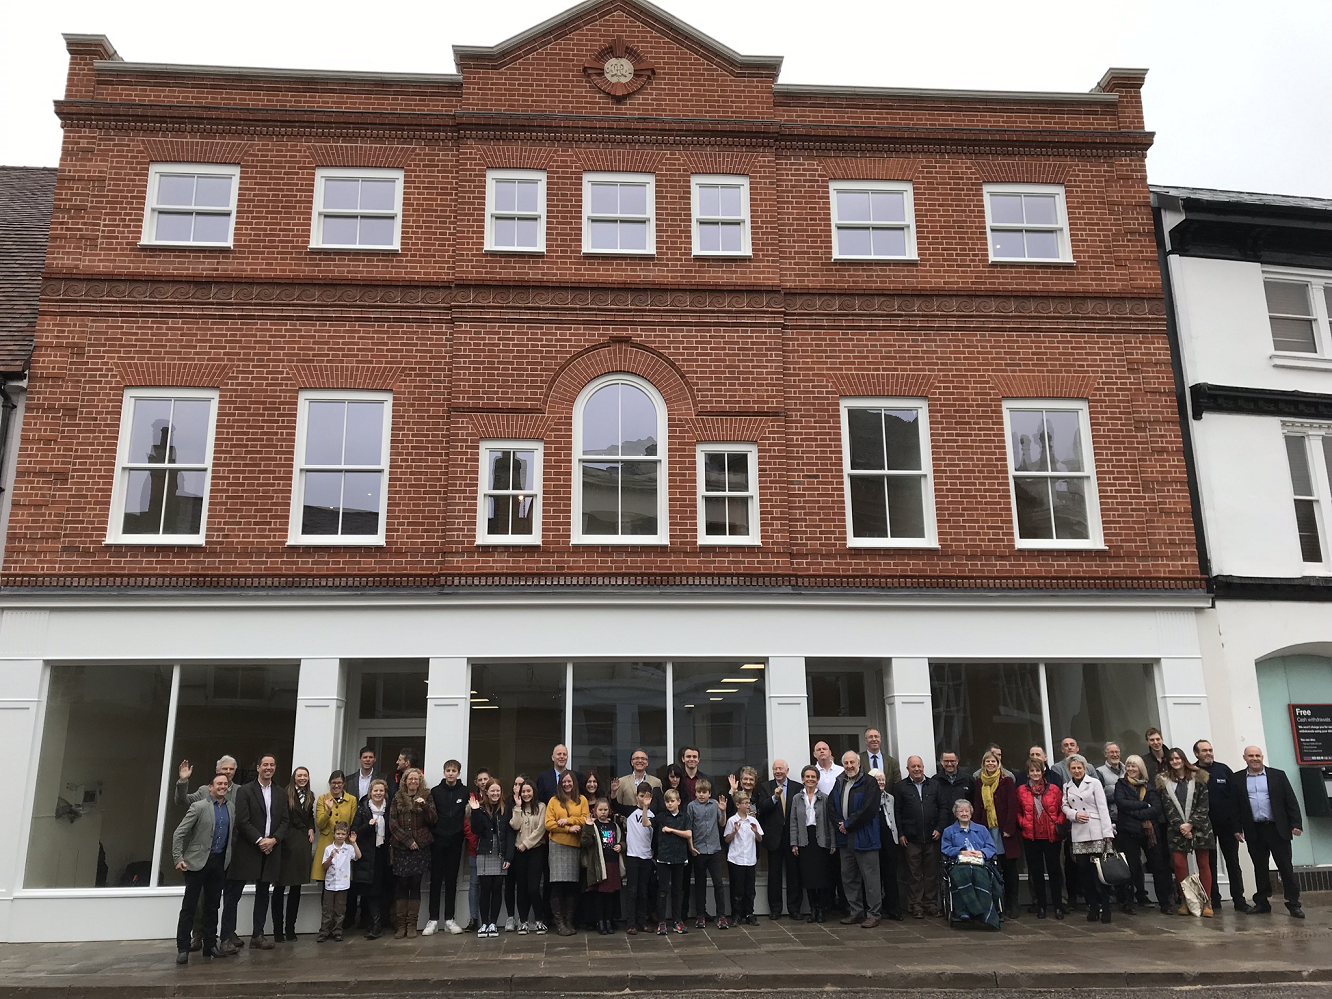 EVENT MARKS HANDOVER OF NEW BUILDING DESTROYED IN SUDBURY FIRE